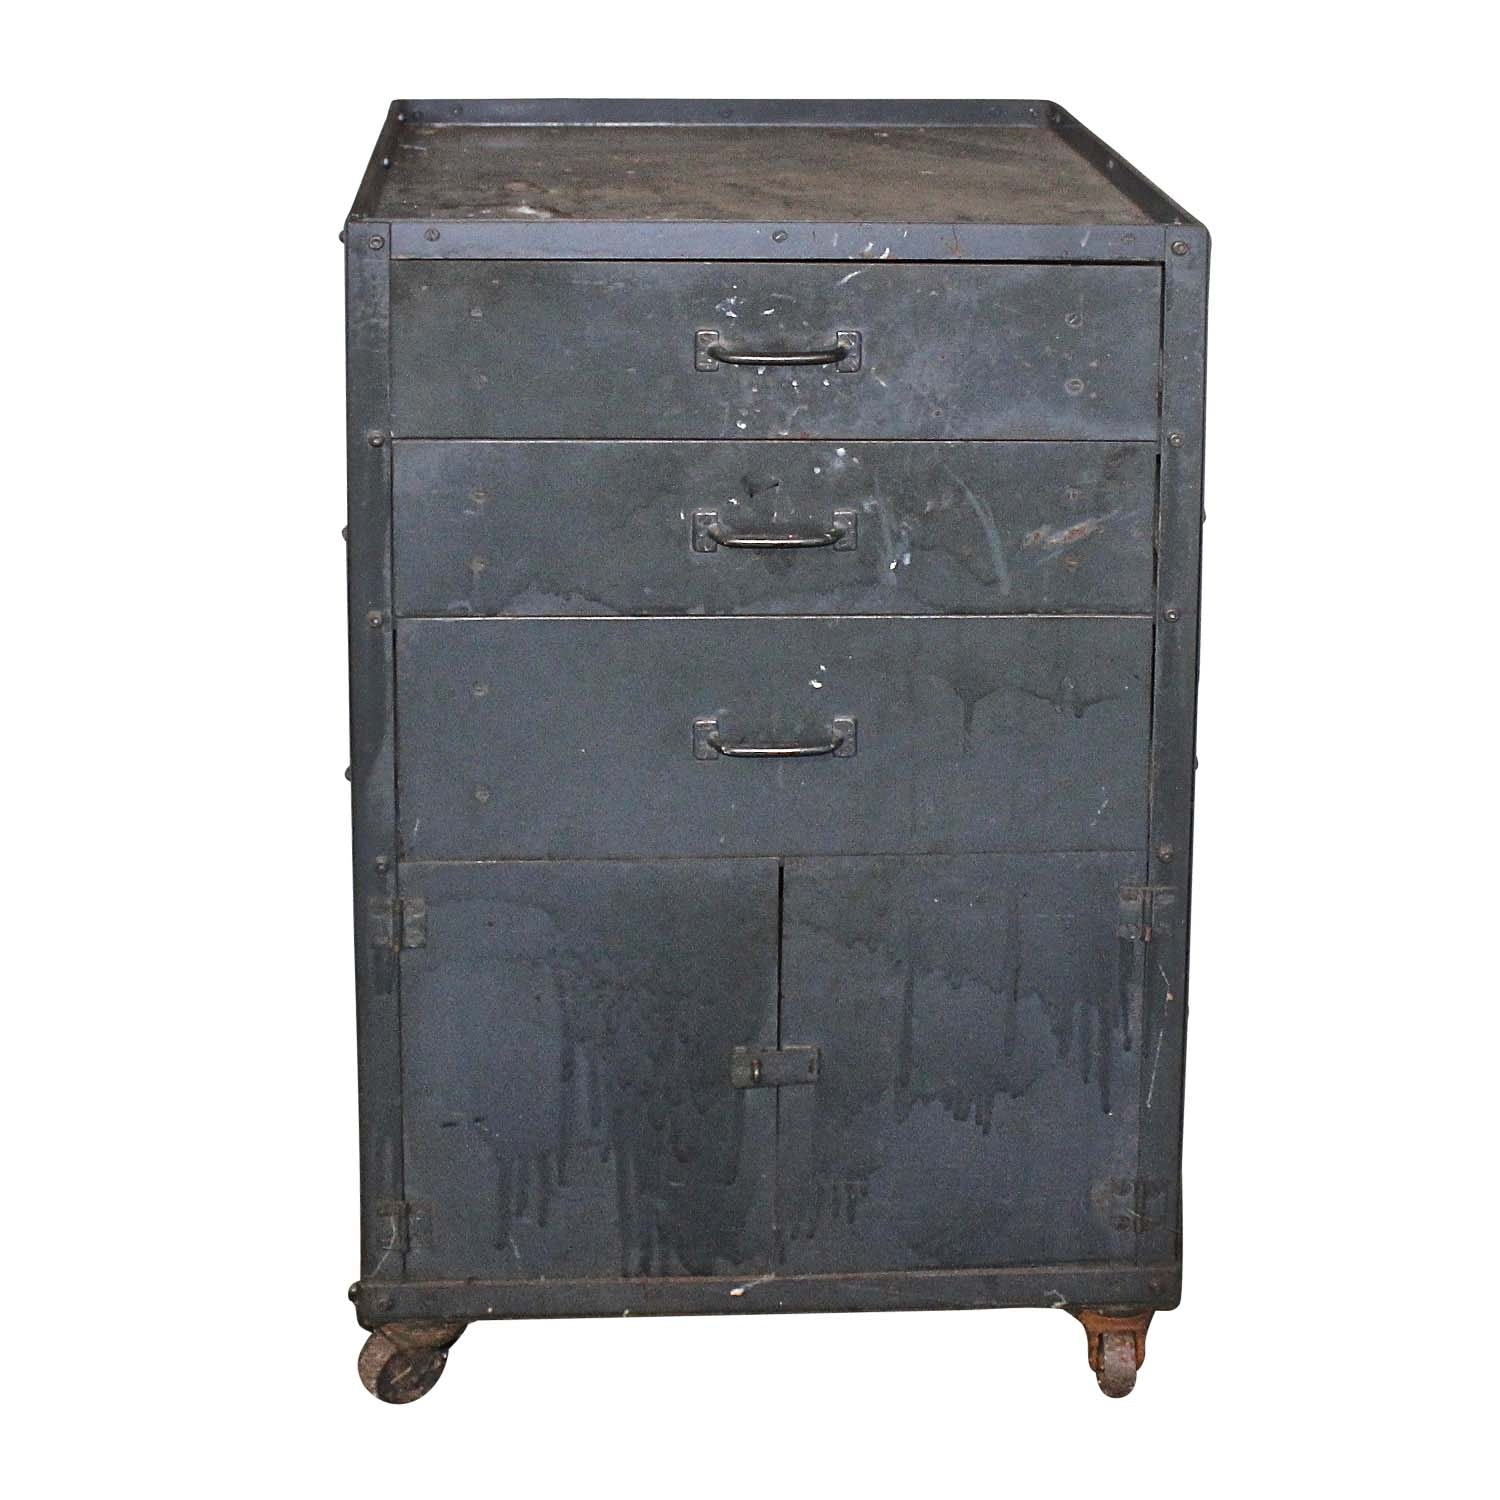 Vintage Metal Tool Cabinet on Wheels